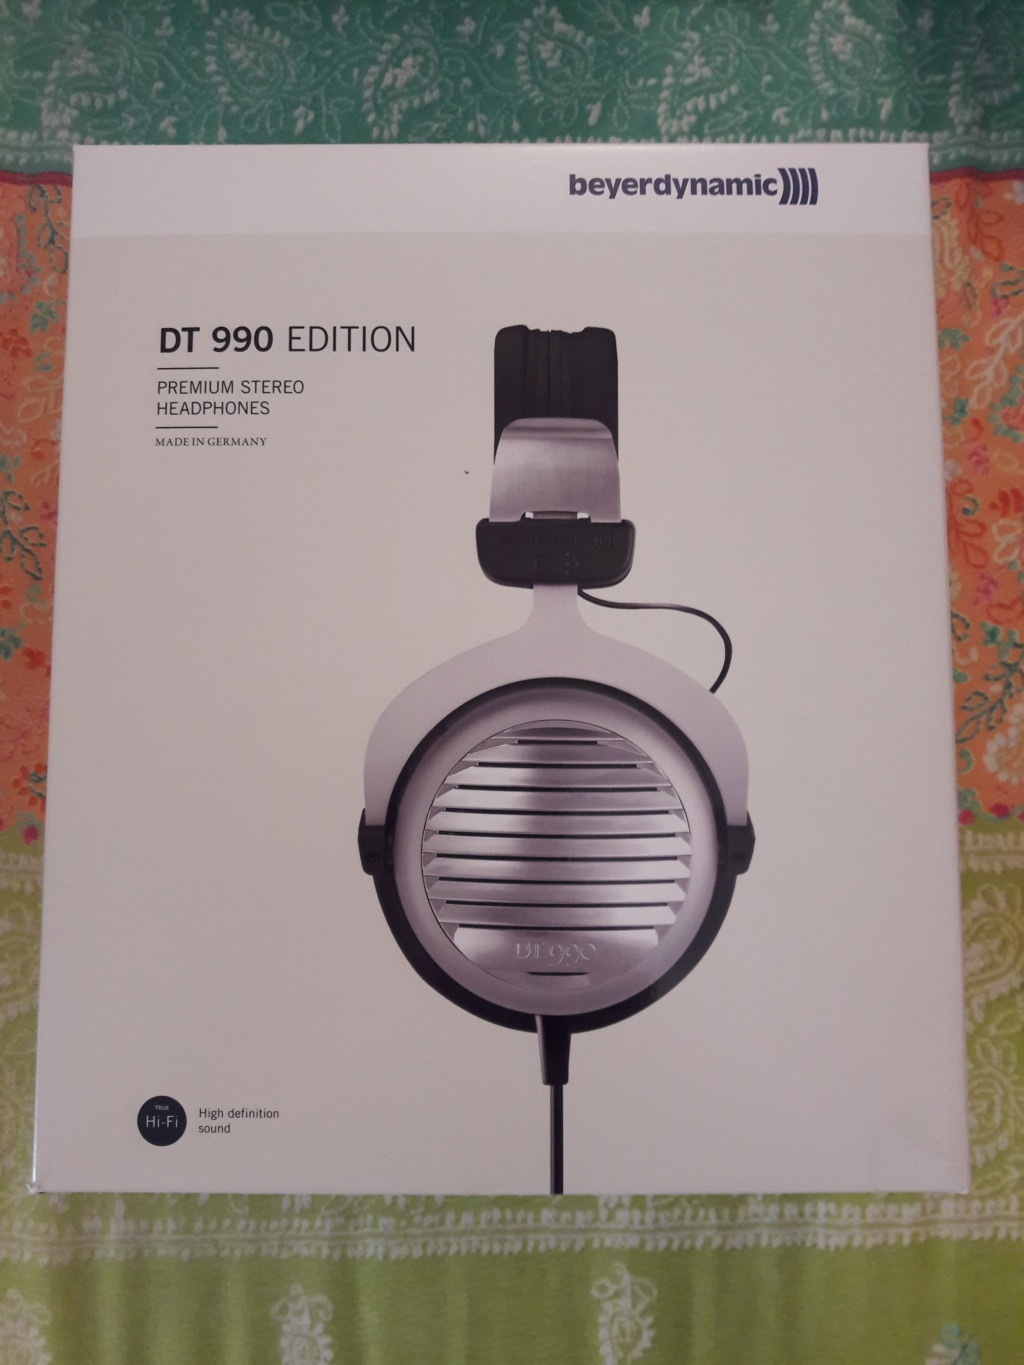 [ RITIRATO DALLA VENDITA ] Grazie. ( VB ) Vendo Beyerdynamic DT-990 Edition 250 Ohm/Dynamic Headphone.IN GARANZIA. 20180911